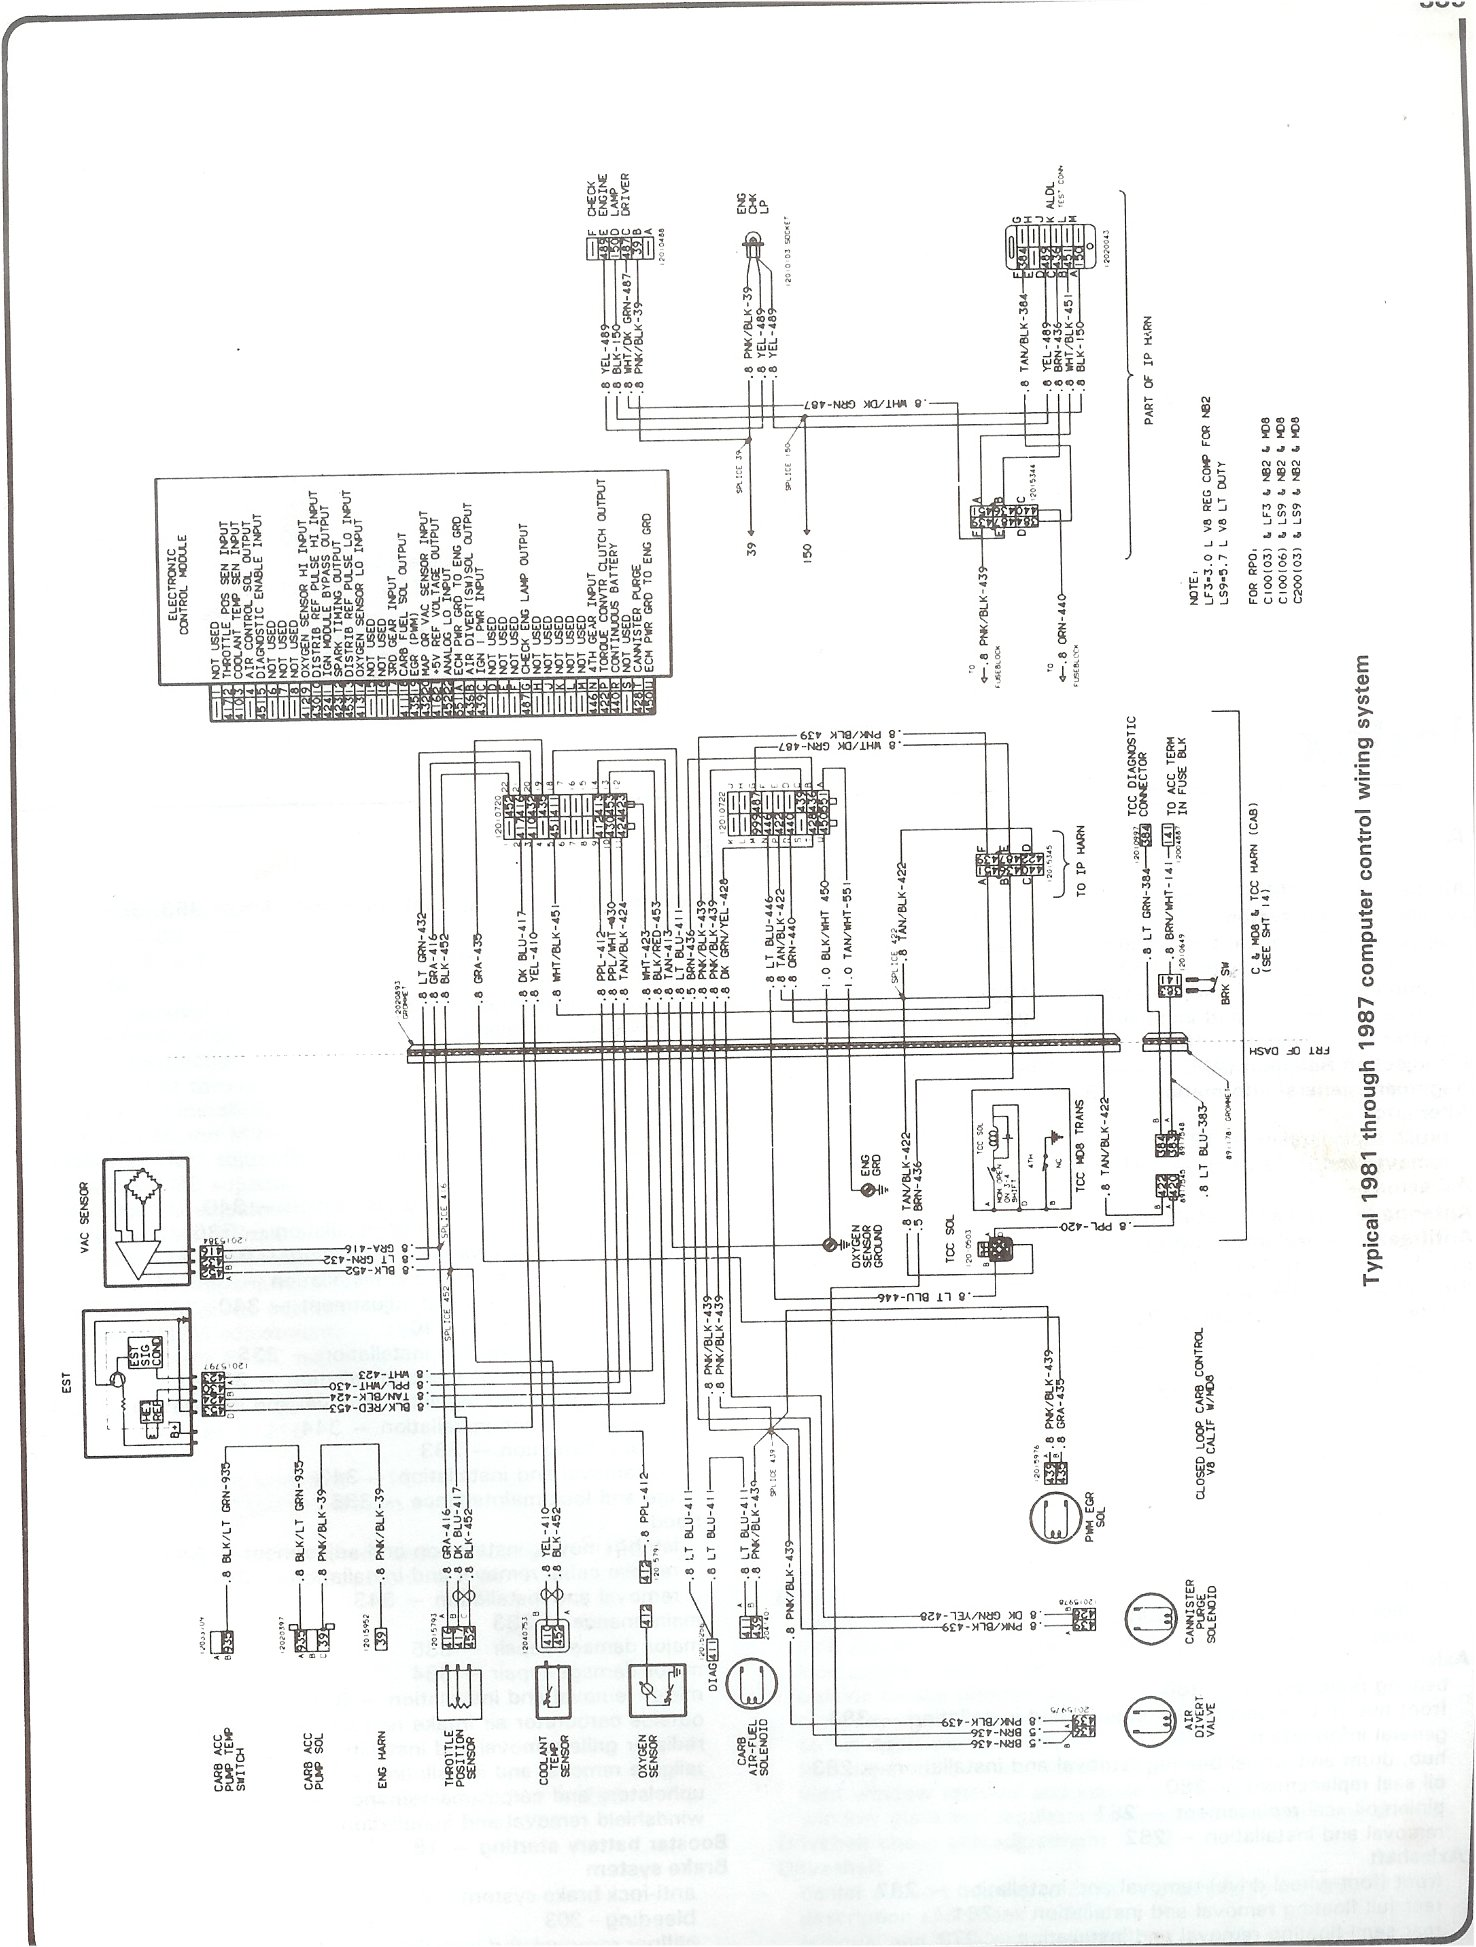 79 chevy truck wiring diagram circuit diagram schematic 1978 datsun 280z wiring-diagram complete 73 87 wiring diagrams 76 chevy truck wiring diagram 79 chevy truck wiring diagram